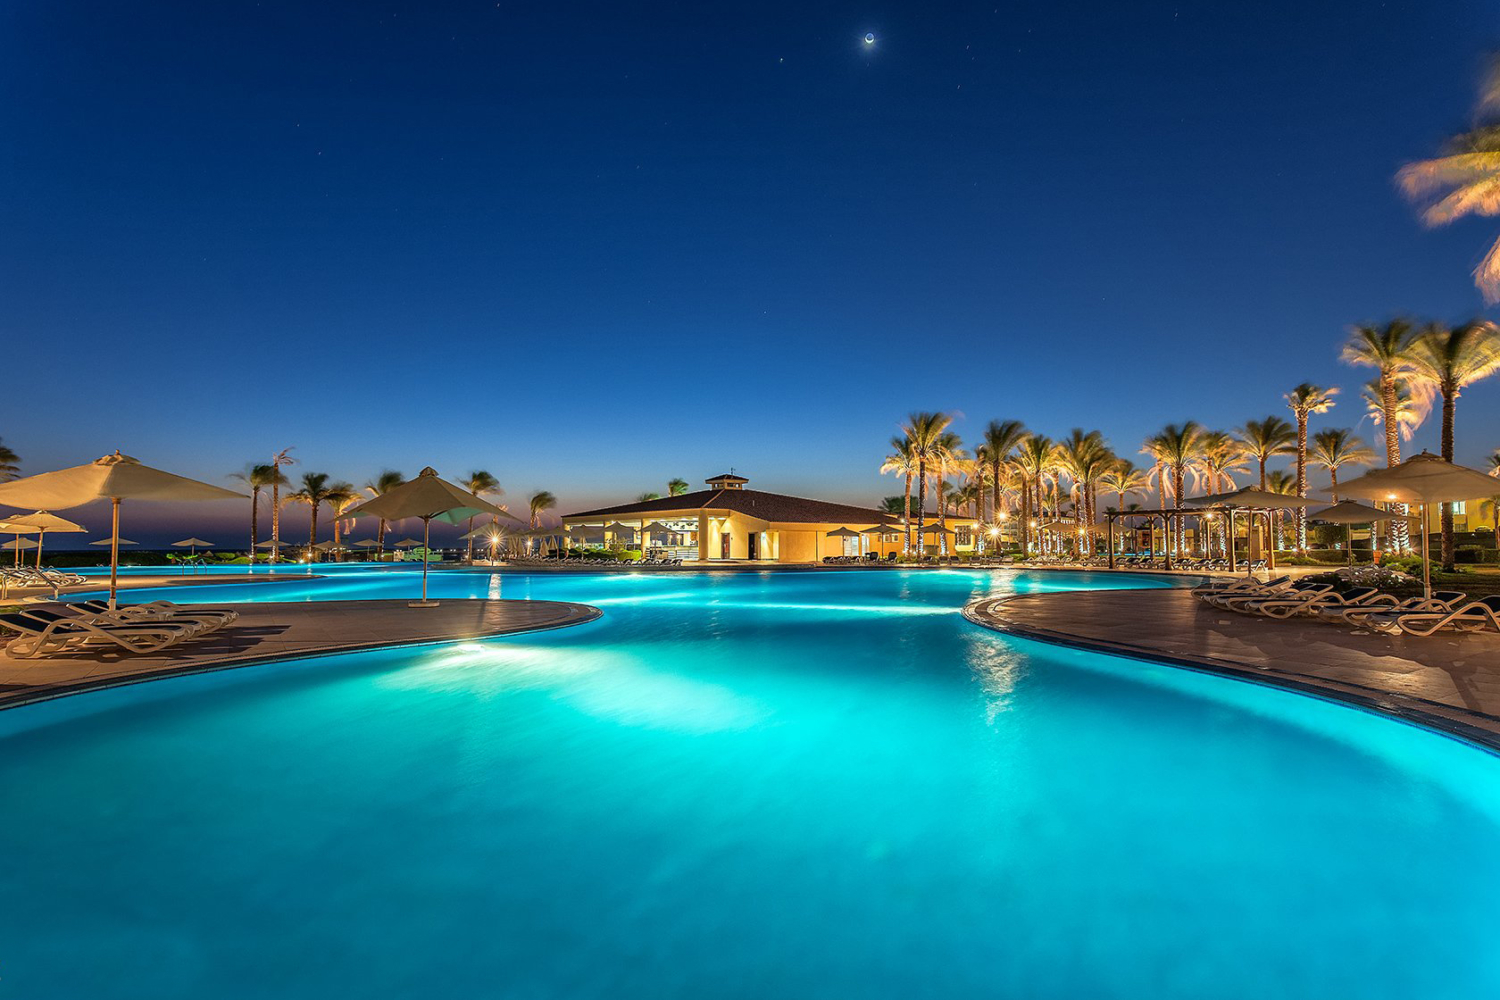 Luxury Hotel Photography by PanaViz